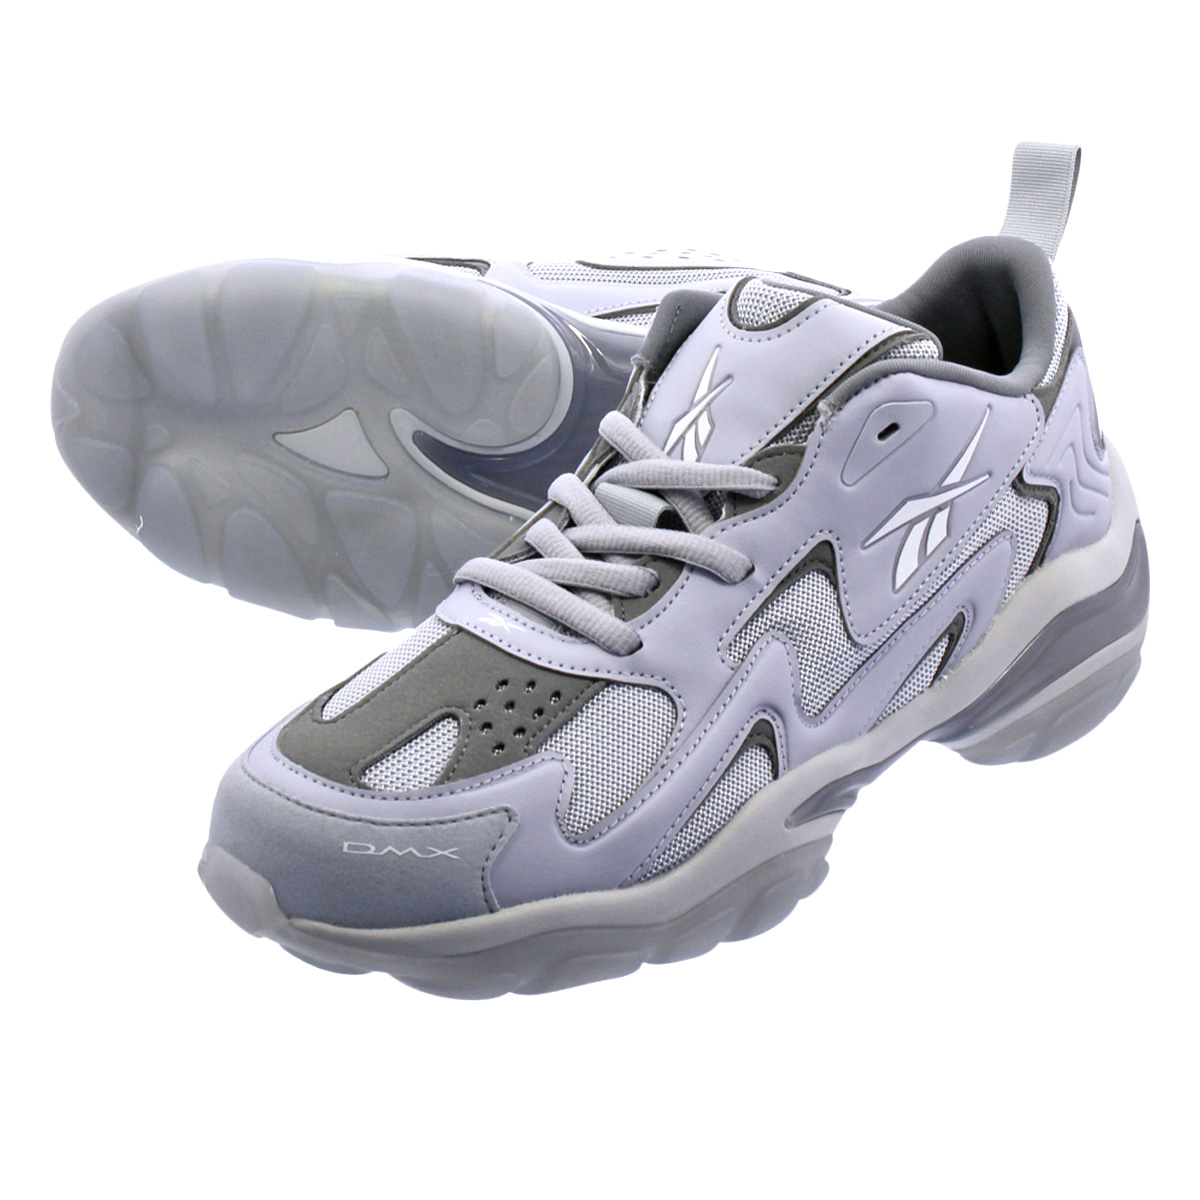 Reebok DMX SERIES 1600 リーボック DMX シリーズ 1600 CLOUD GREY/LEMON ZEST dv5562